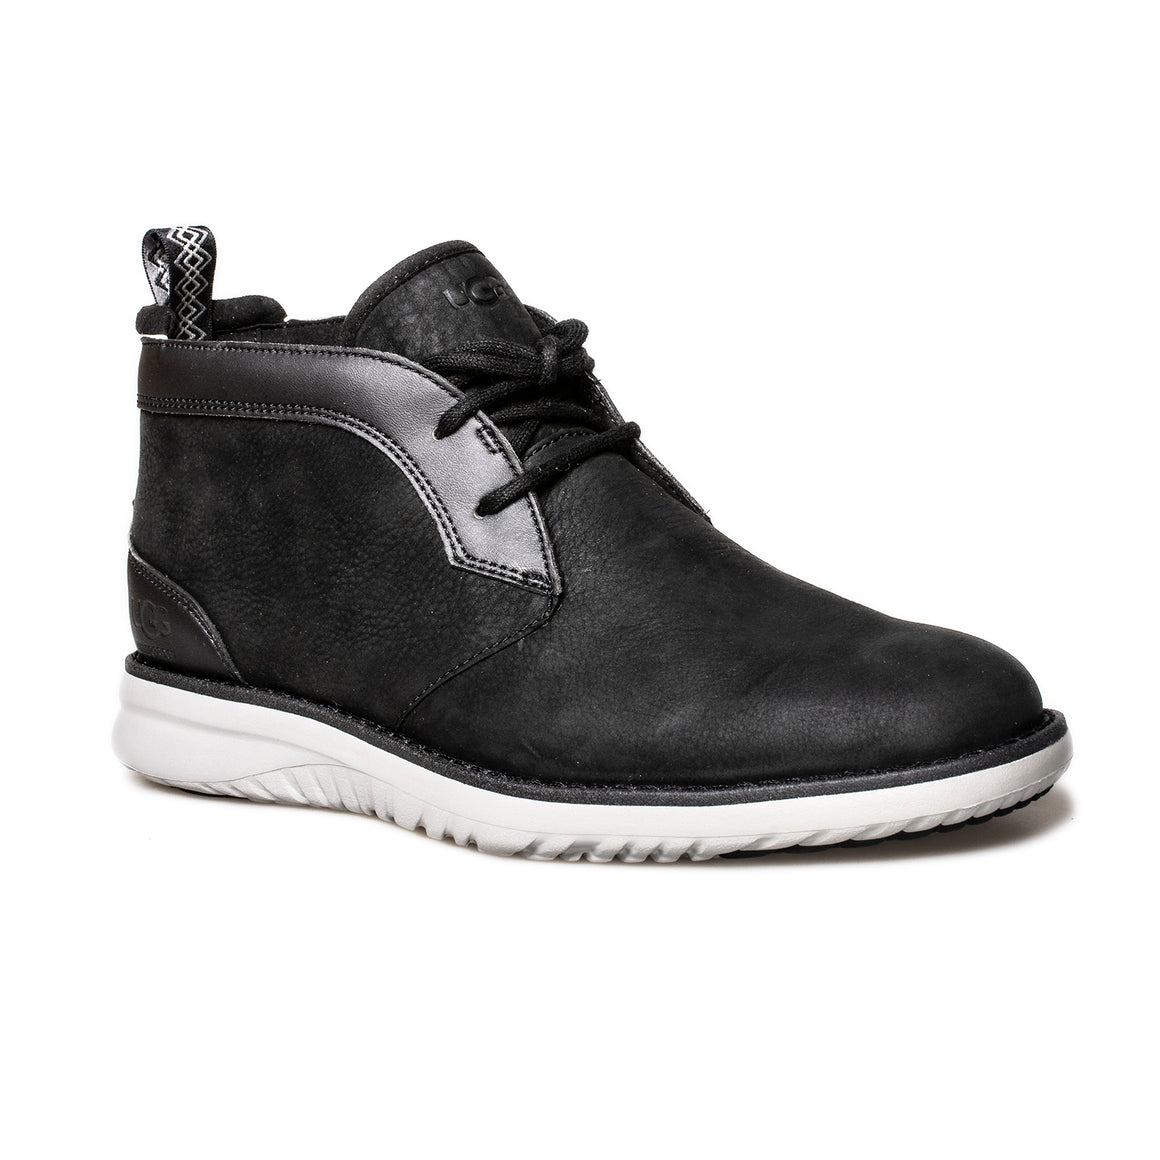 UGG Union Chukka Waterproof Black TNL Boot's - Men's